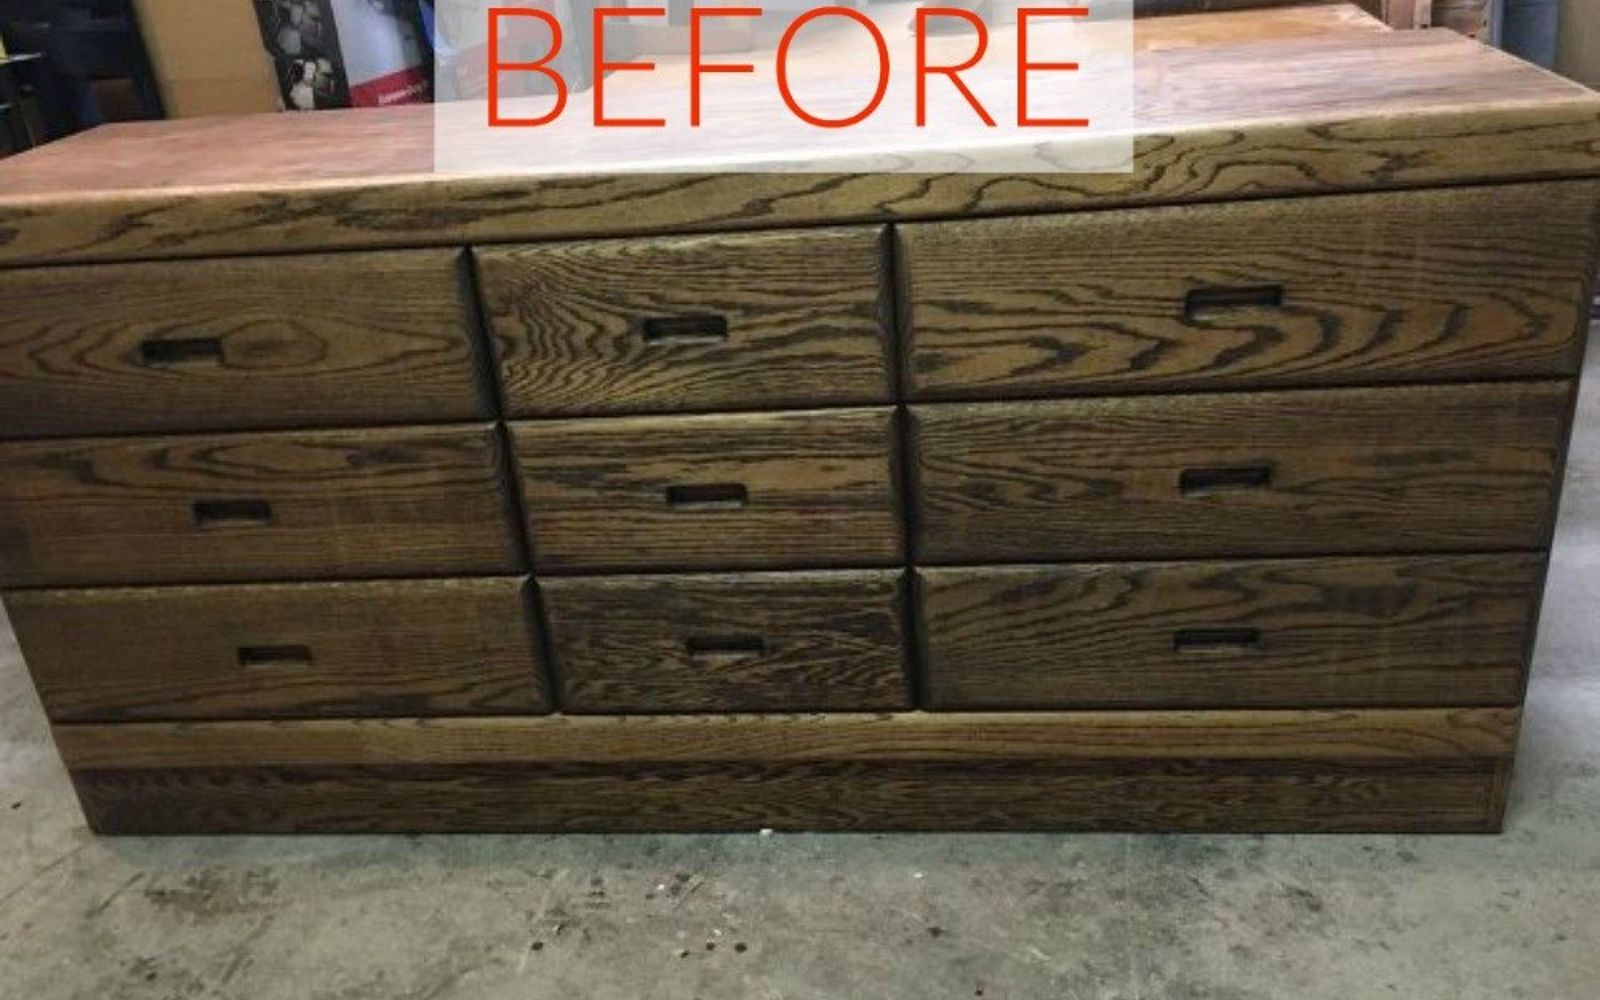 s 10 surprising ways to turn old furniture into extra seating, painted furniture, Before A plain yet sold dresser